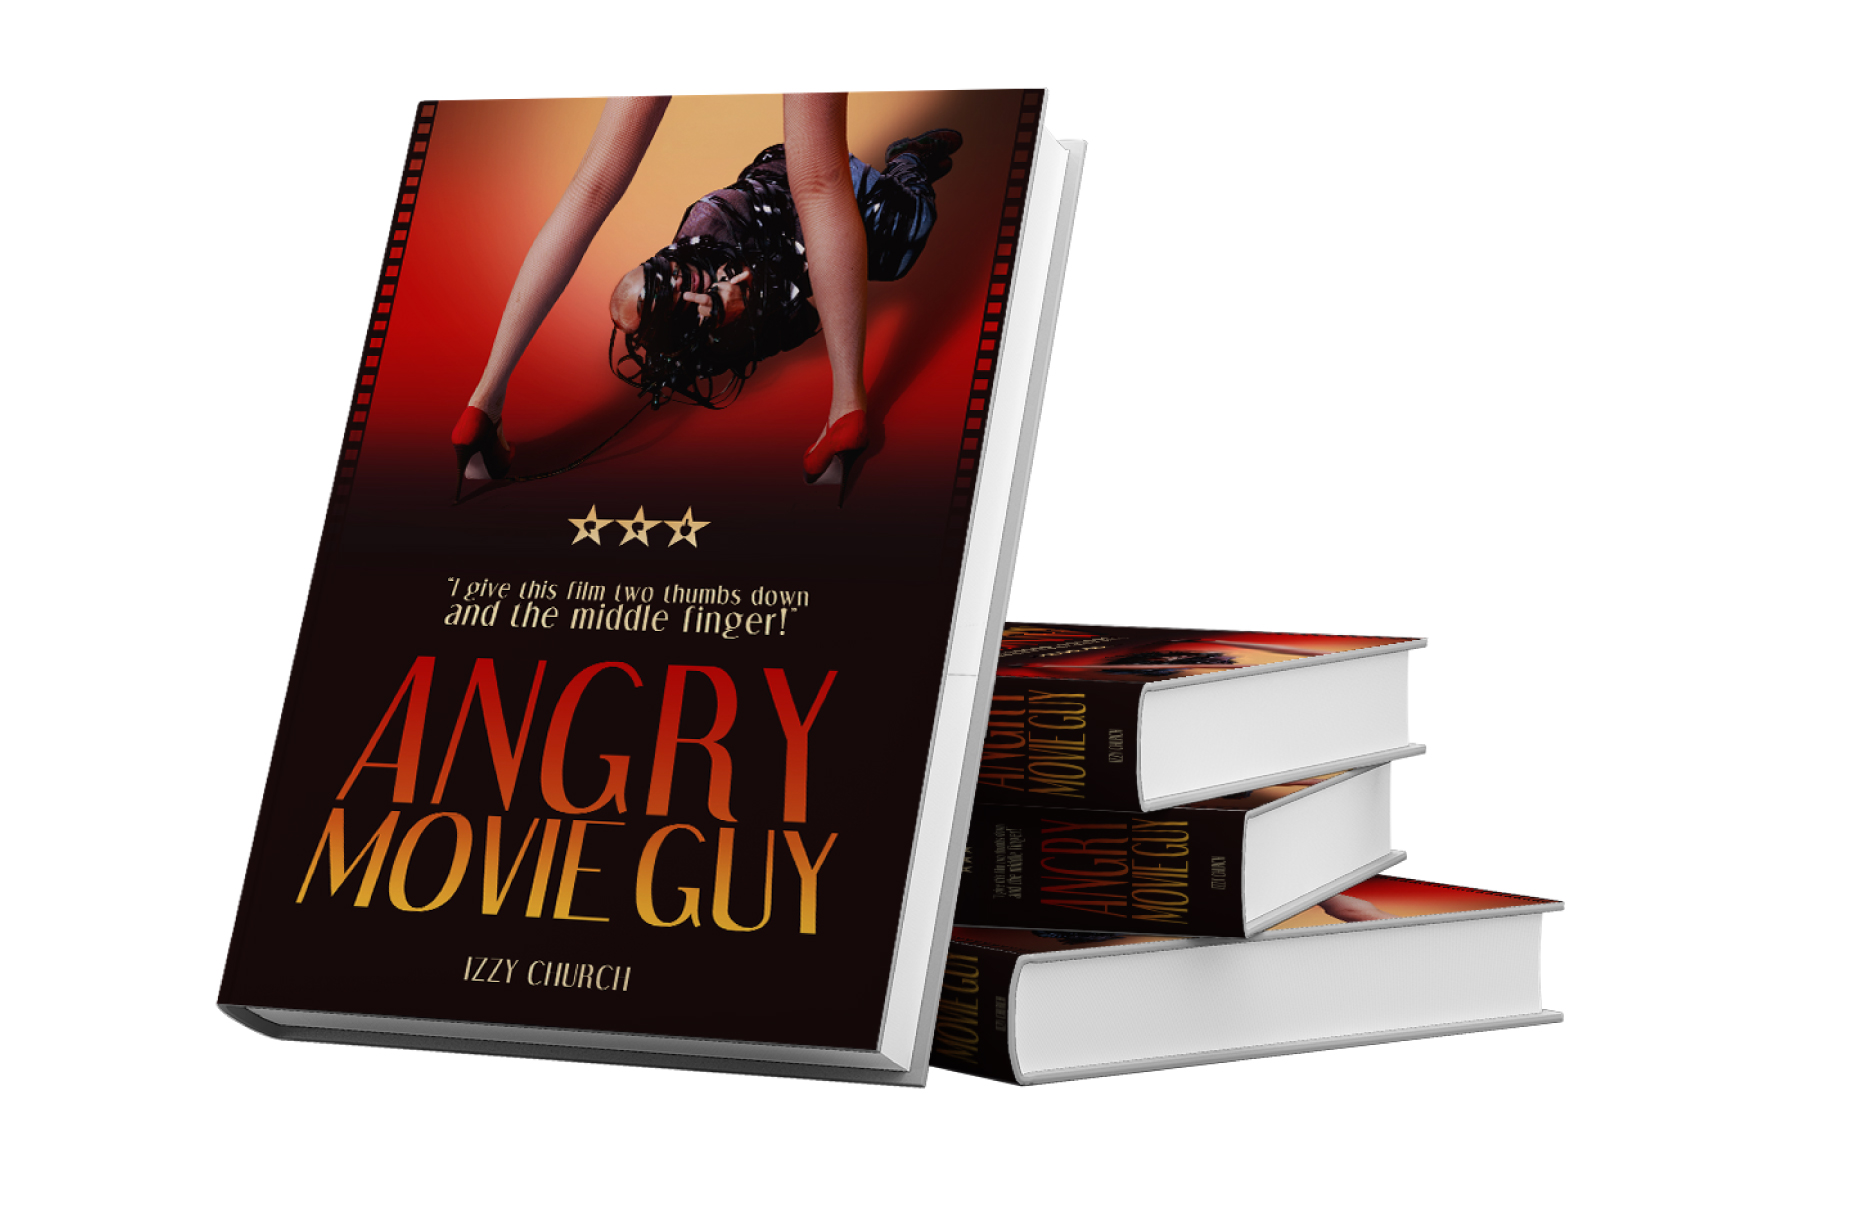 Angry Movie Guy